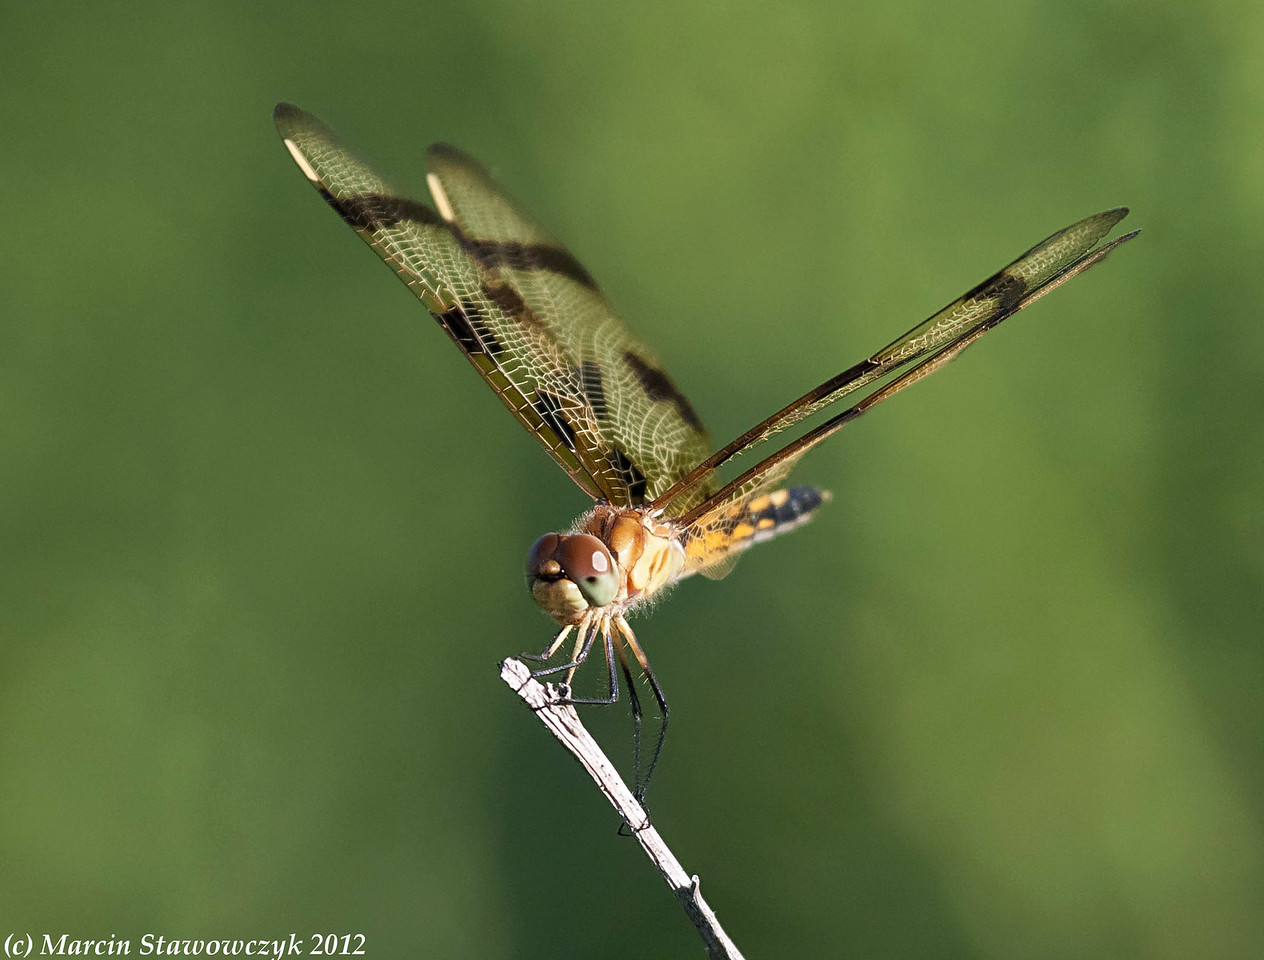 Dragonfly from the front